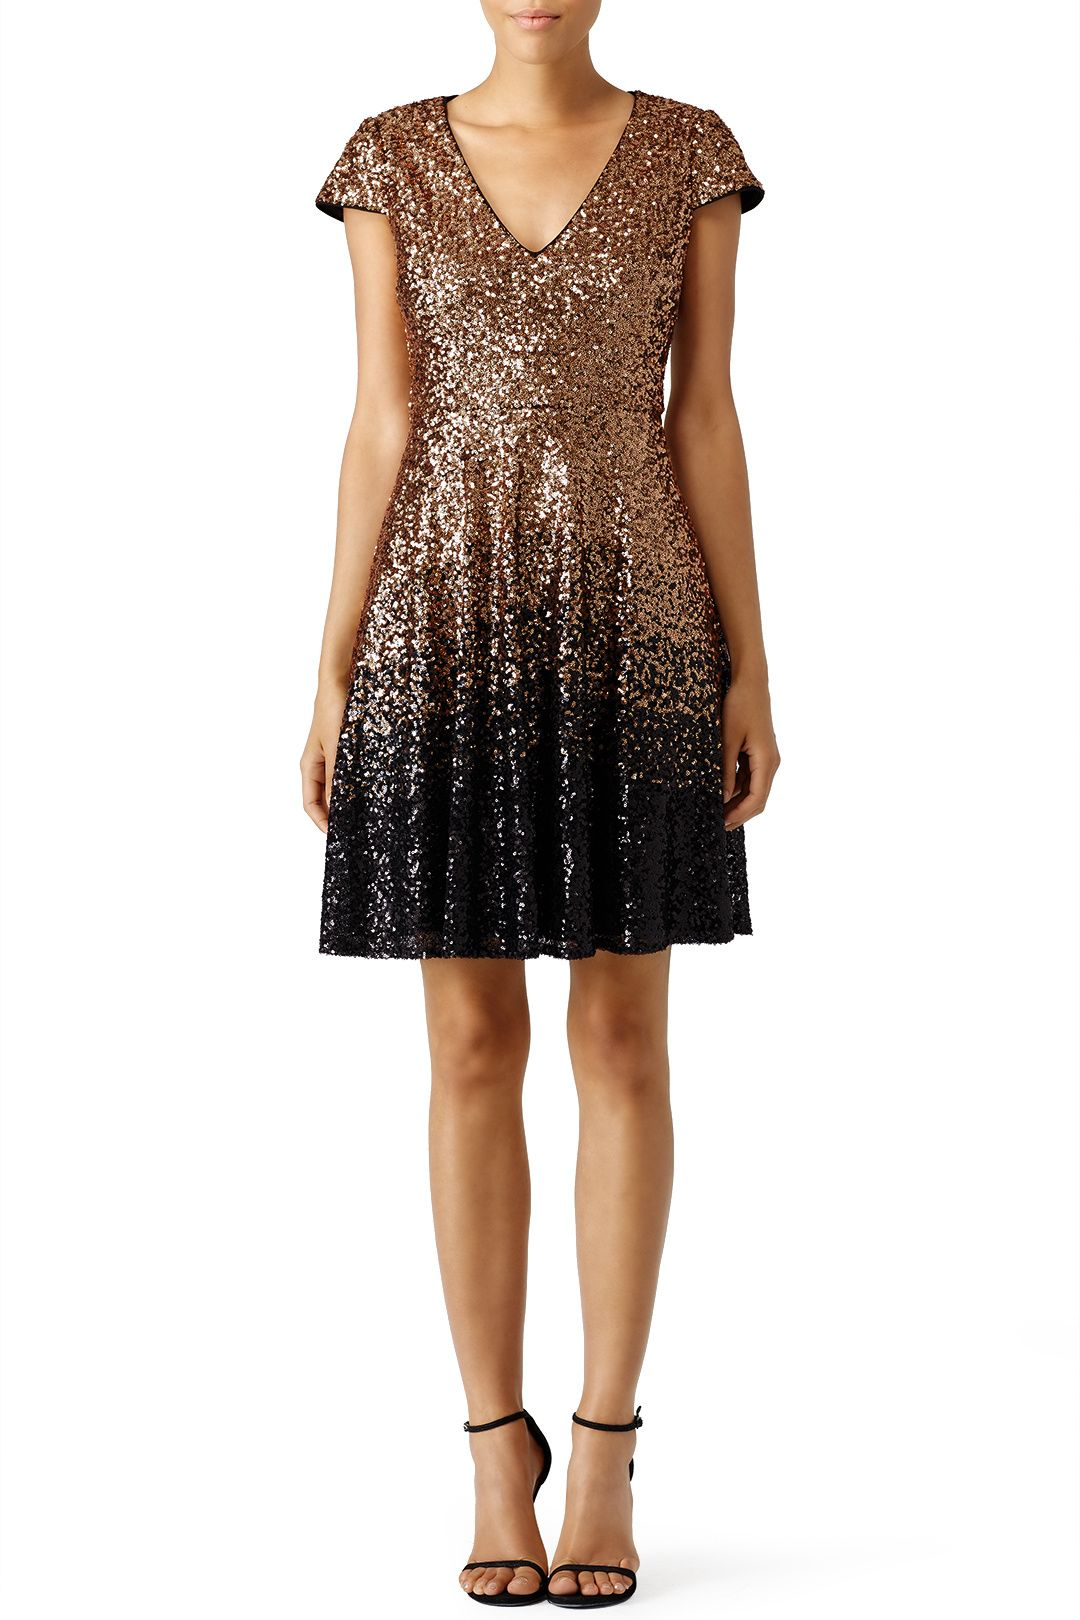 741fe530086 Badgley Mischka Ombre Natasha Dress. Rent ...